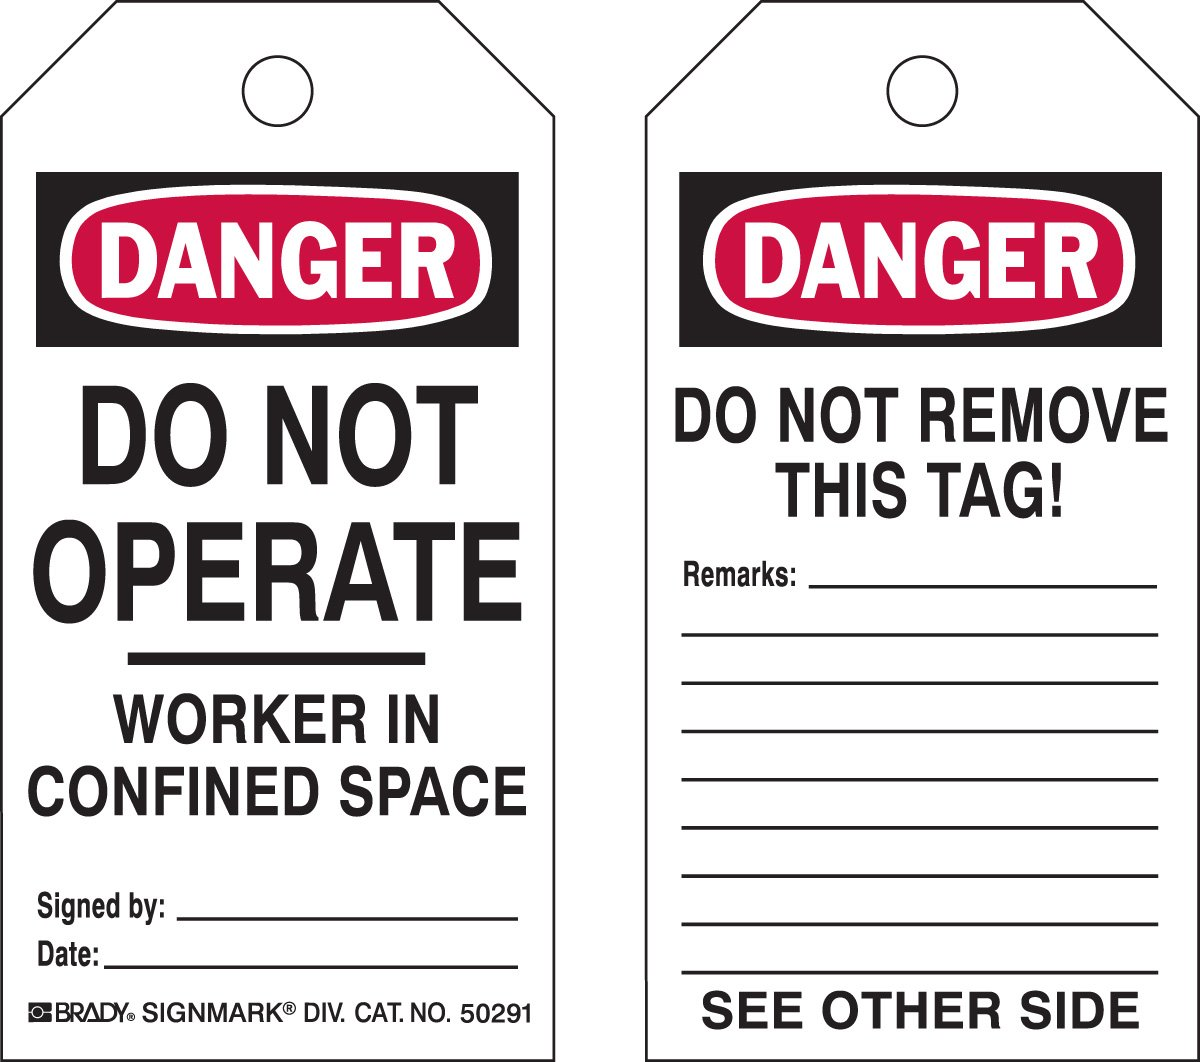 Brady  50291 5 3/4'' Height x 3'' Width, Heavy Duty Polyester (B-837), Black/Red on White Confined Space Tags (25 Tags) by Brady